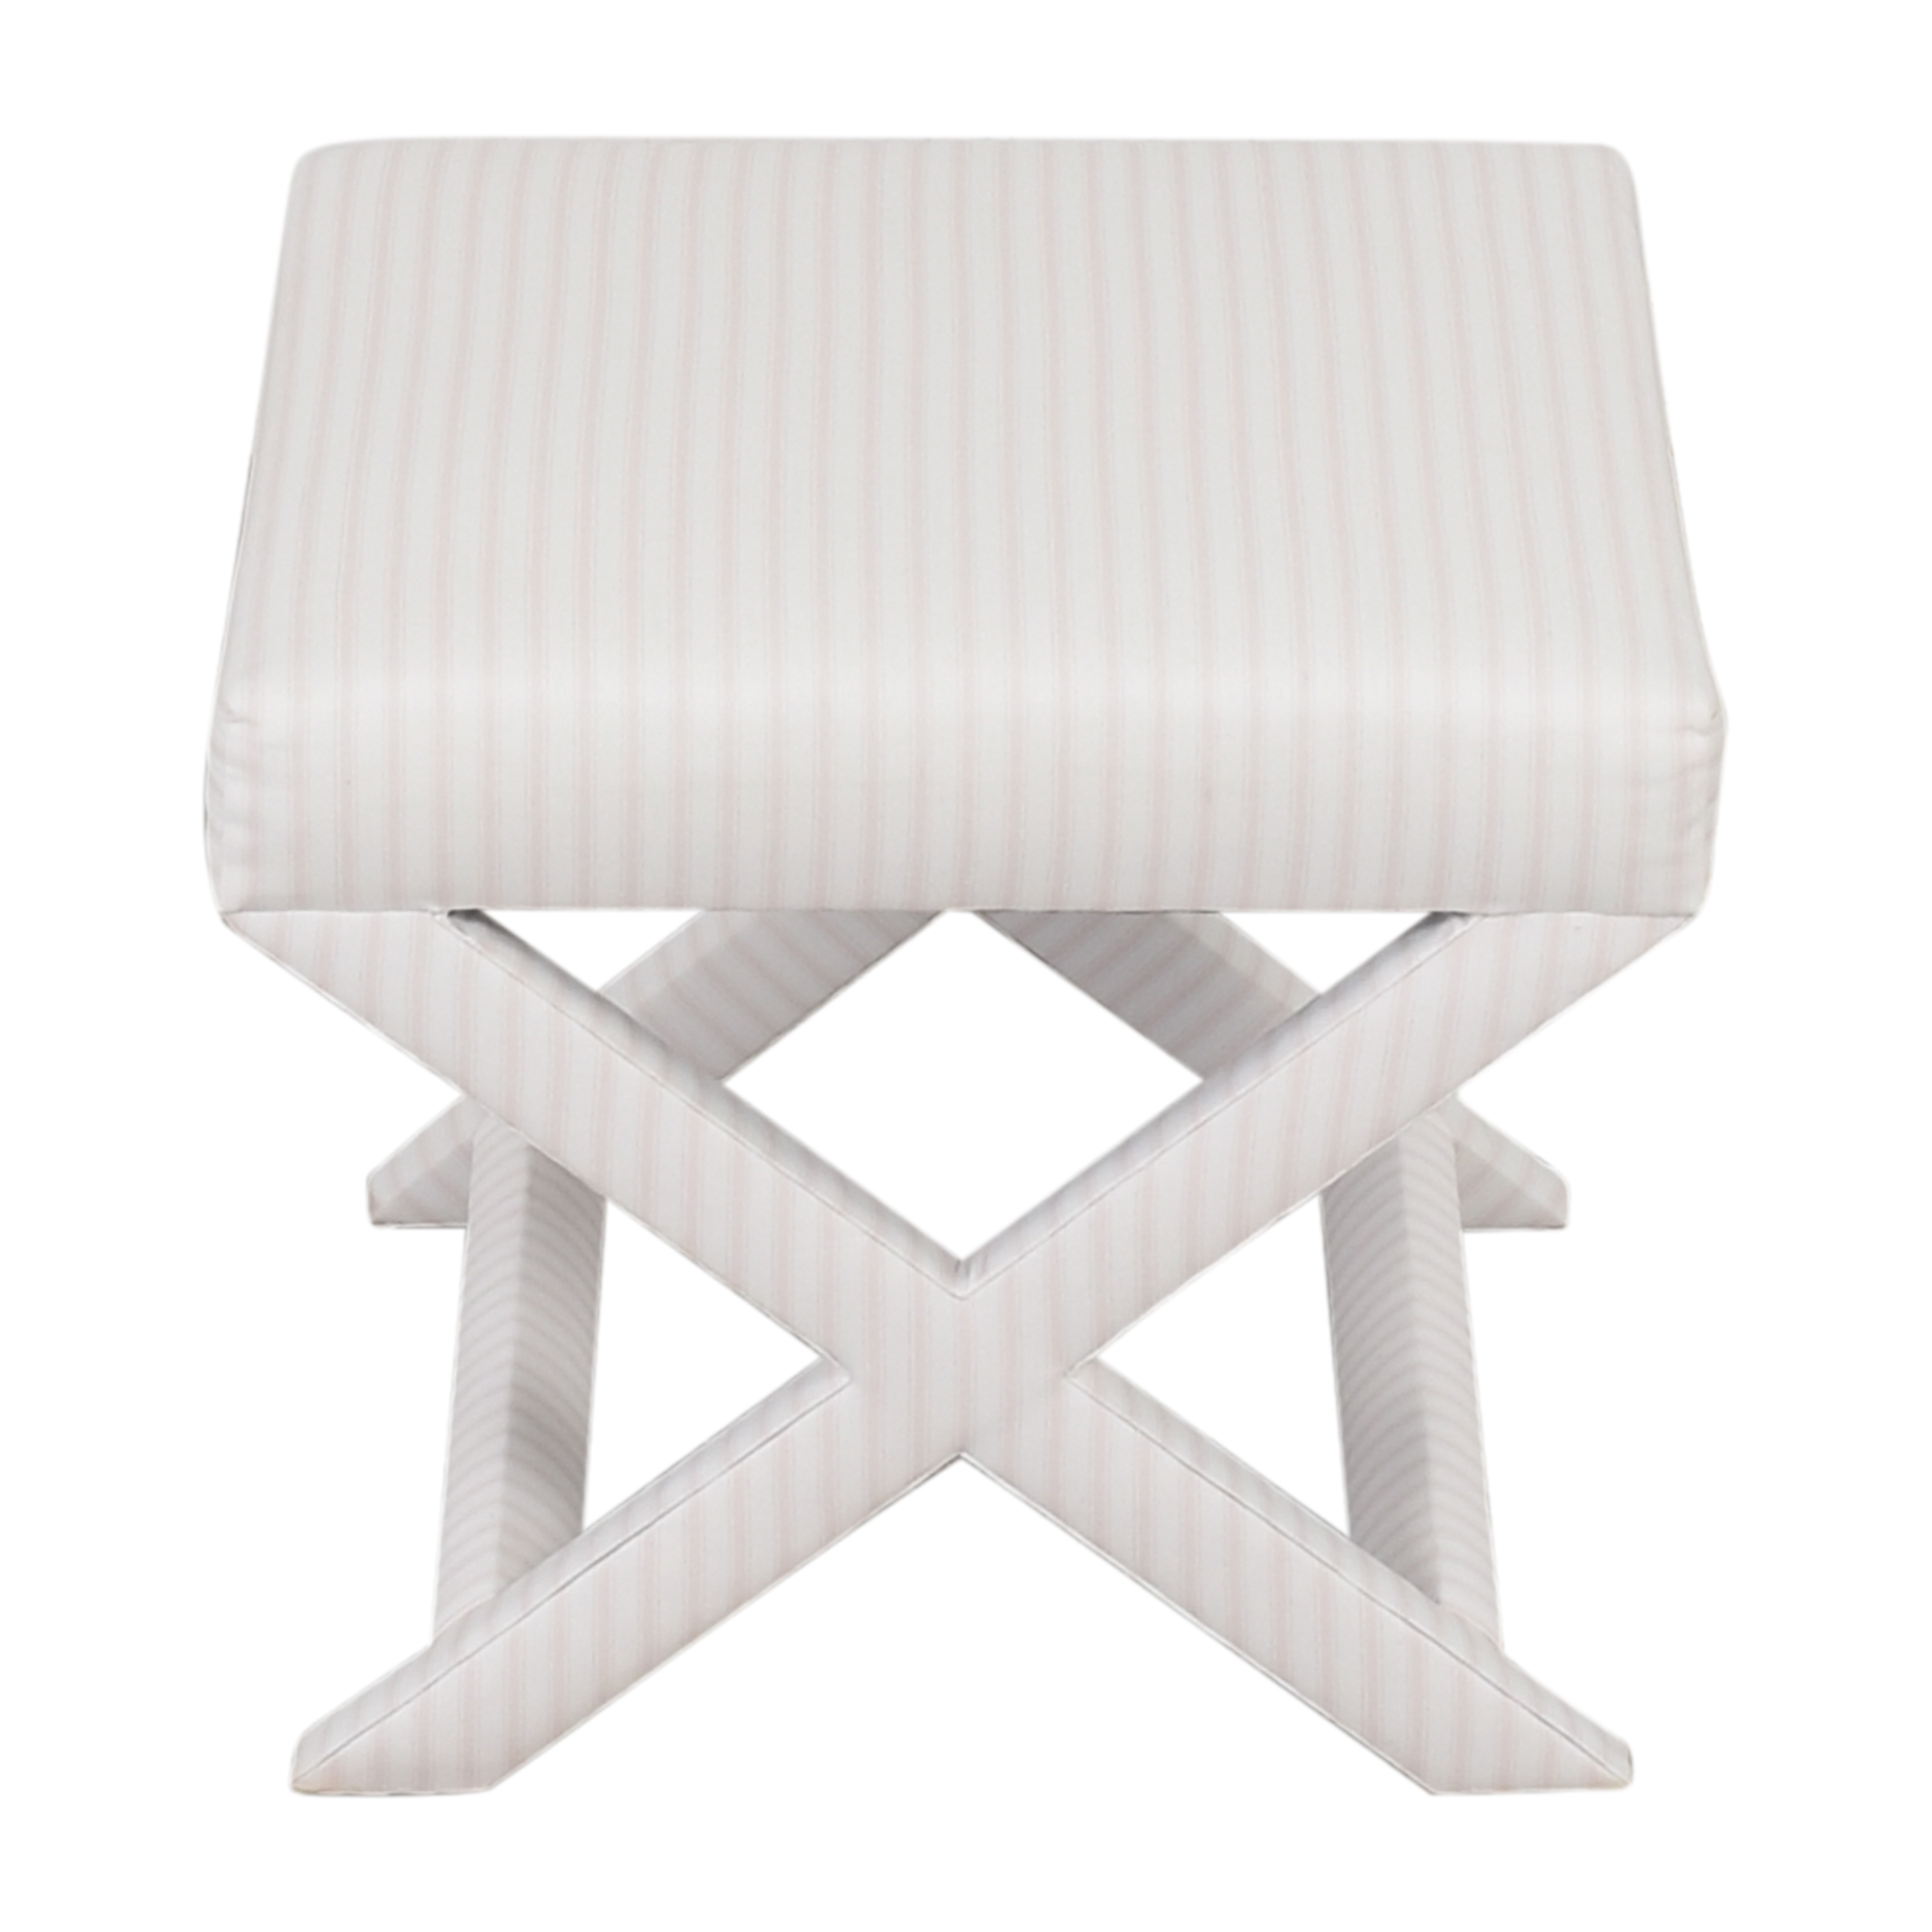 buy The Inside Classic Ticking Stripe X Bench The Inside Chairs